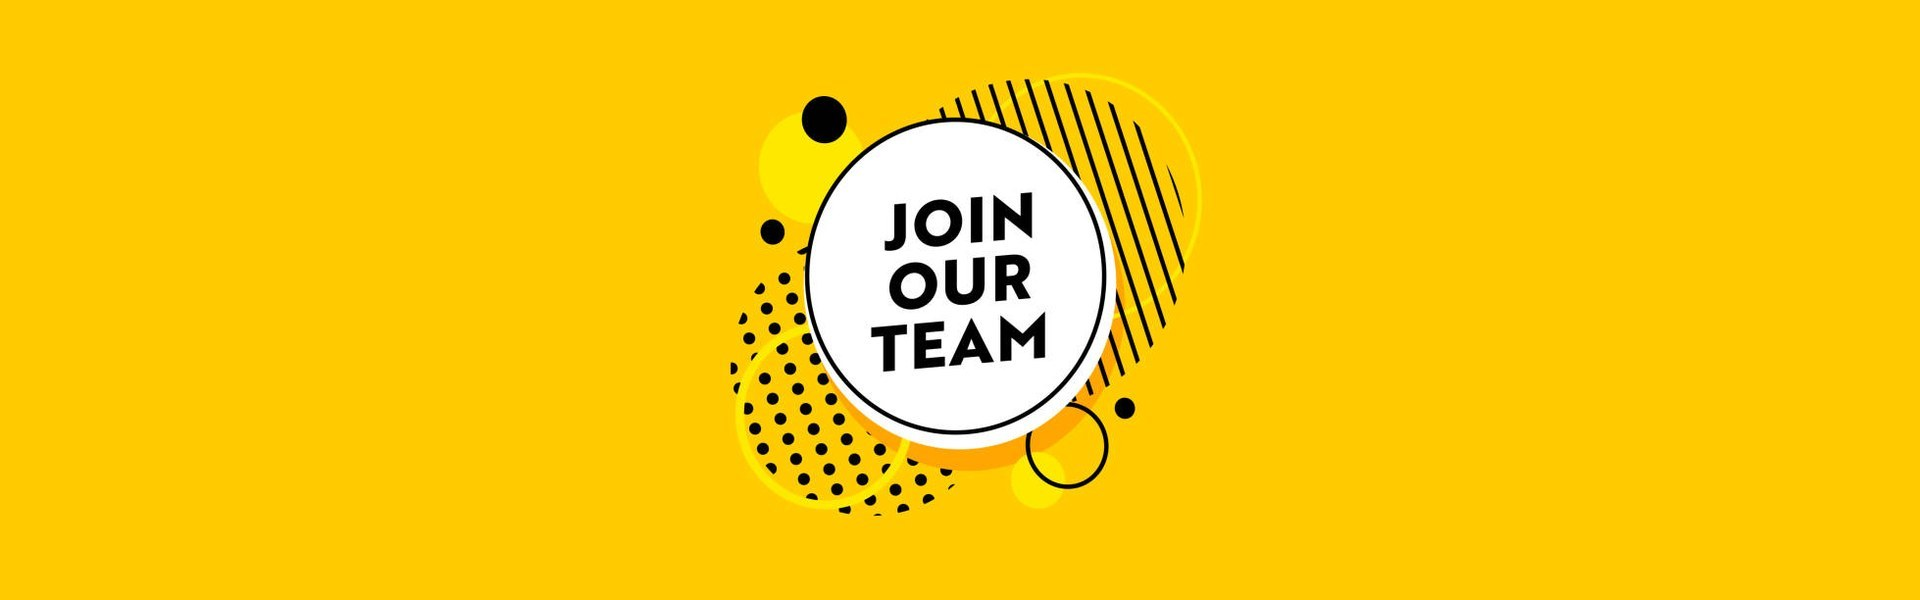 join our team yellow 1920